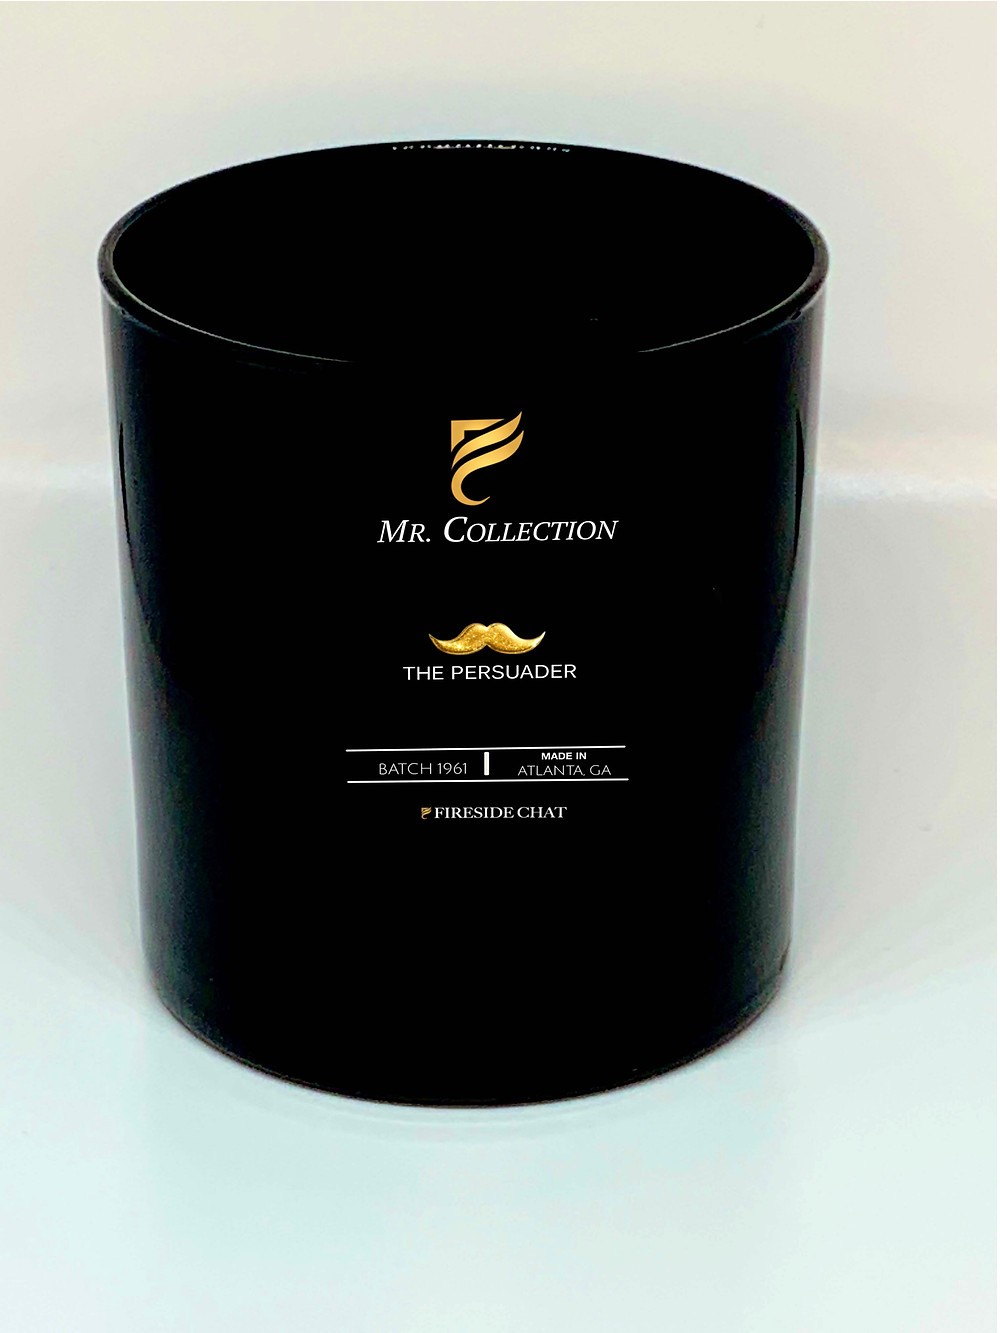 A charasmatic seductive fragrance with notes of Sandalwood, Leather, and Vetiver.